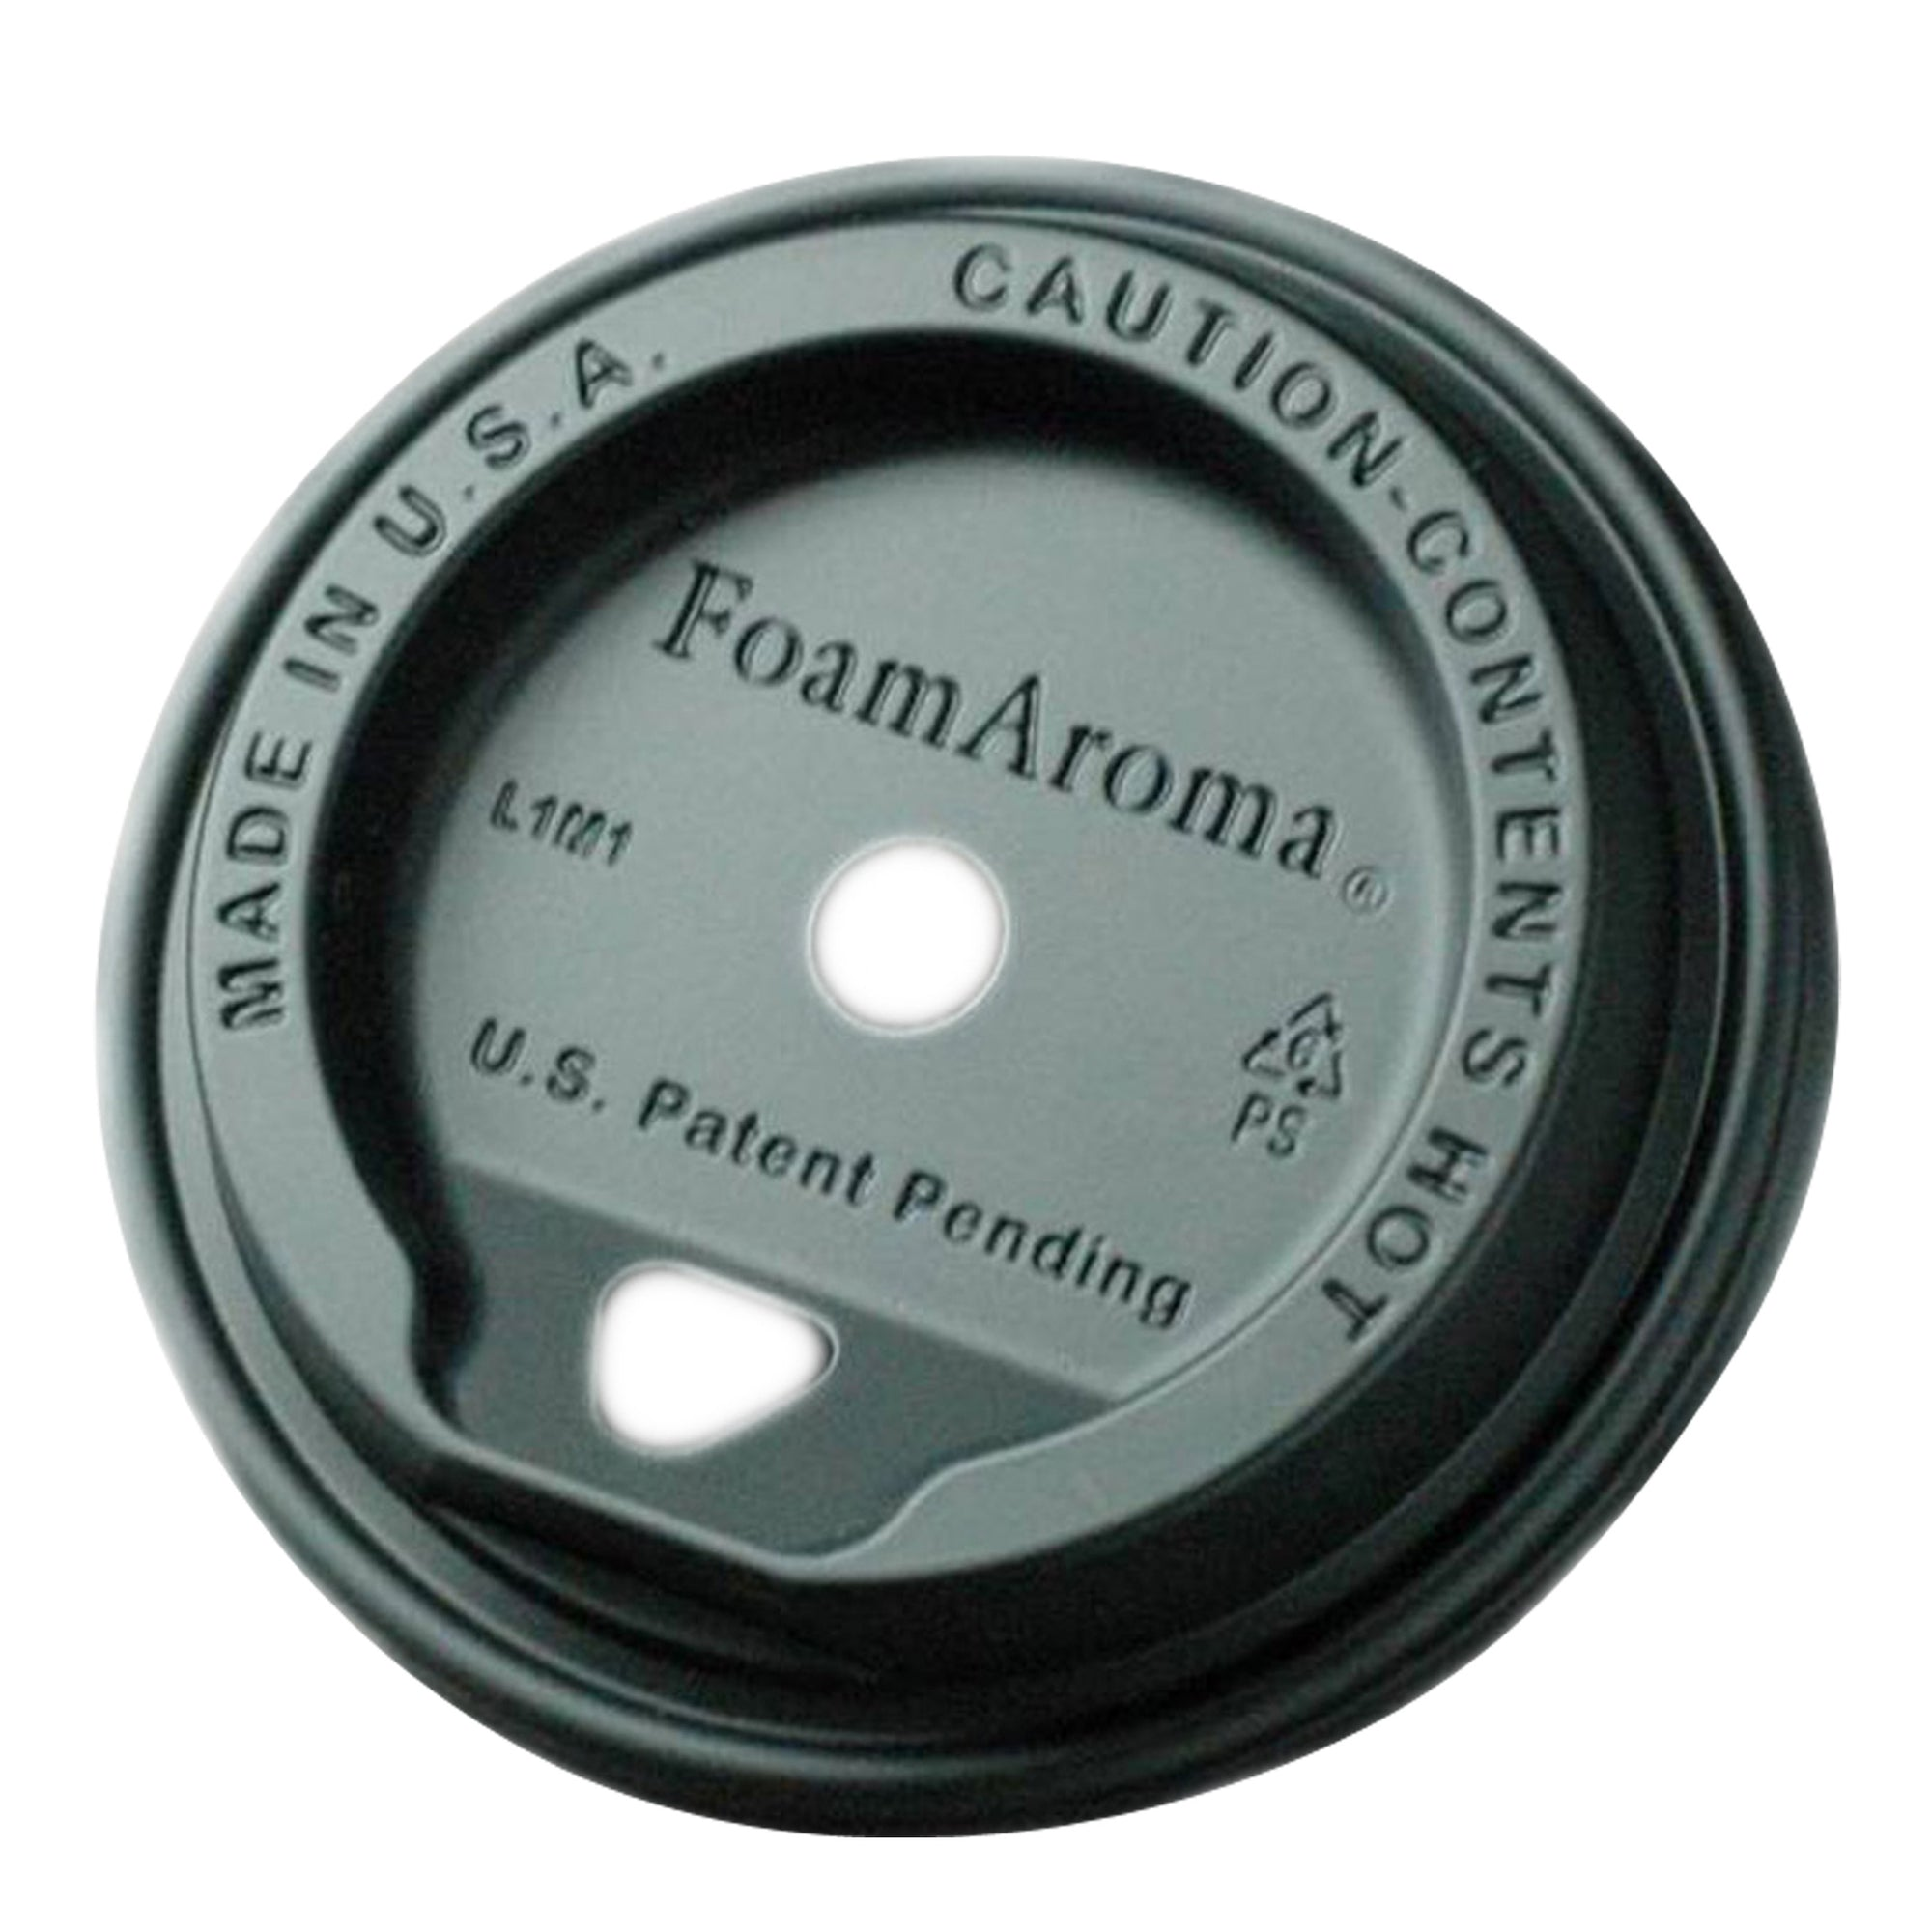 Take Away Foamaroma Lid Black 1000pcs - Espresso Gear